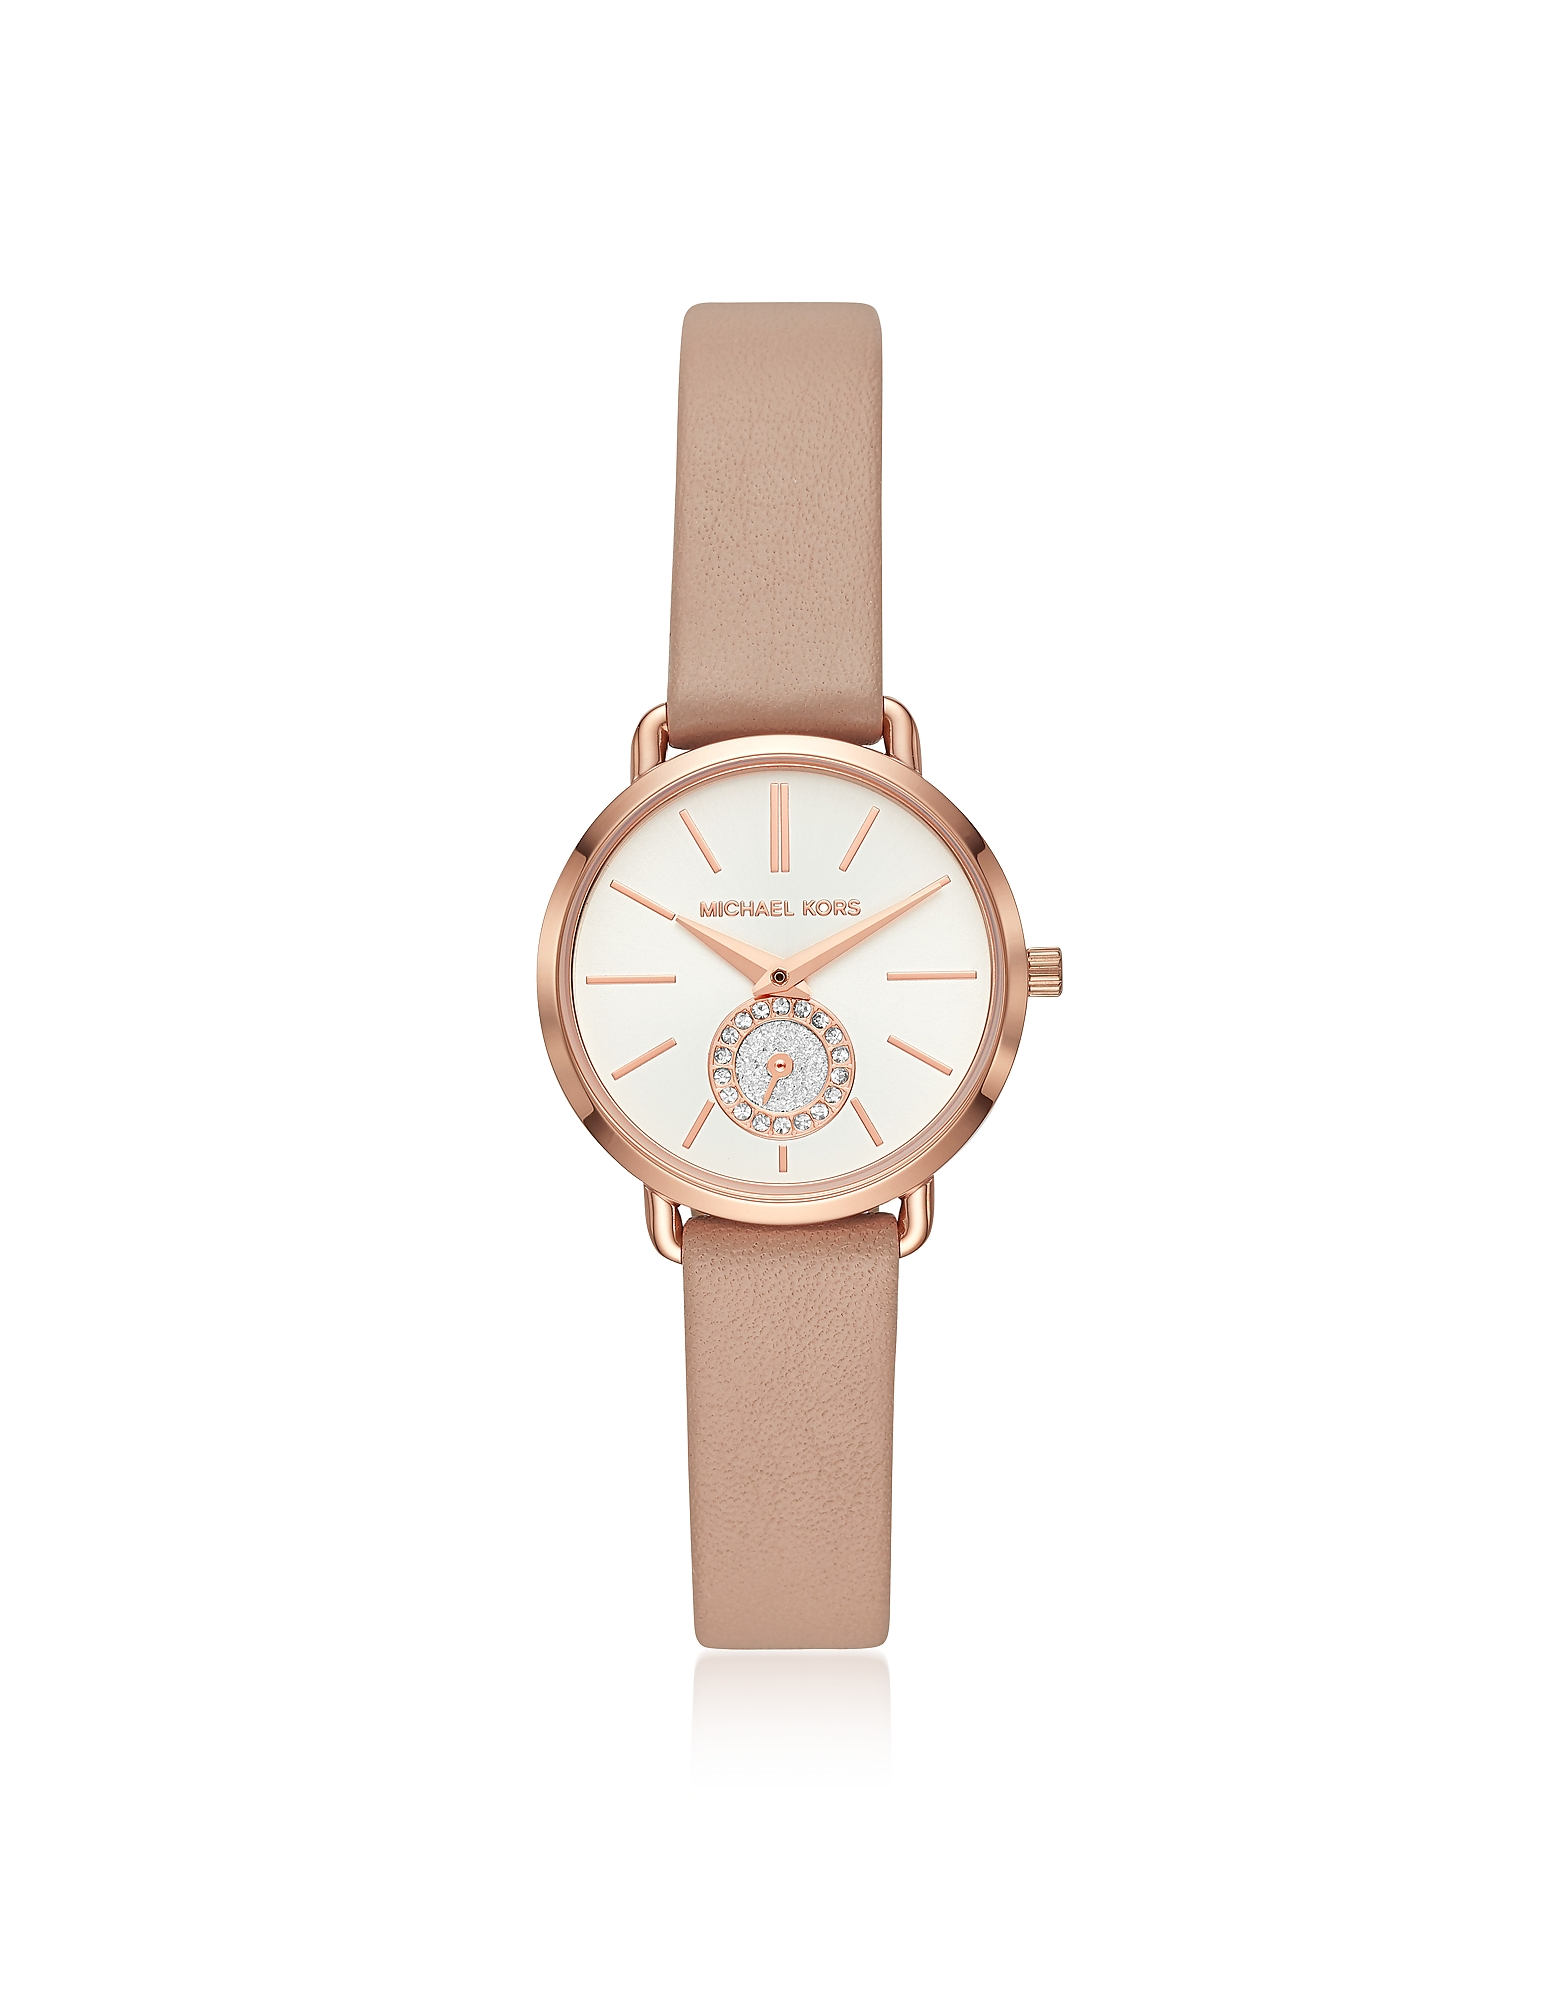 Michael Kors Women's Watches, Petite Portia Rose Gold Tone and Blush Leather Watch